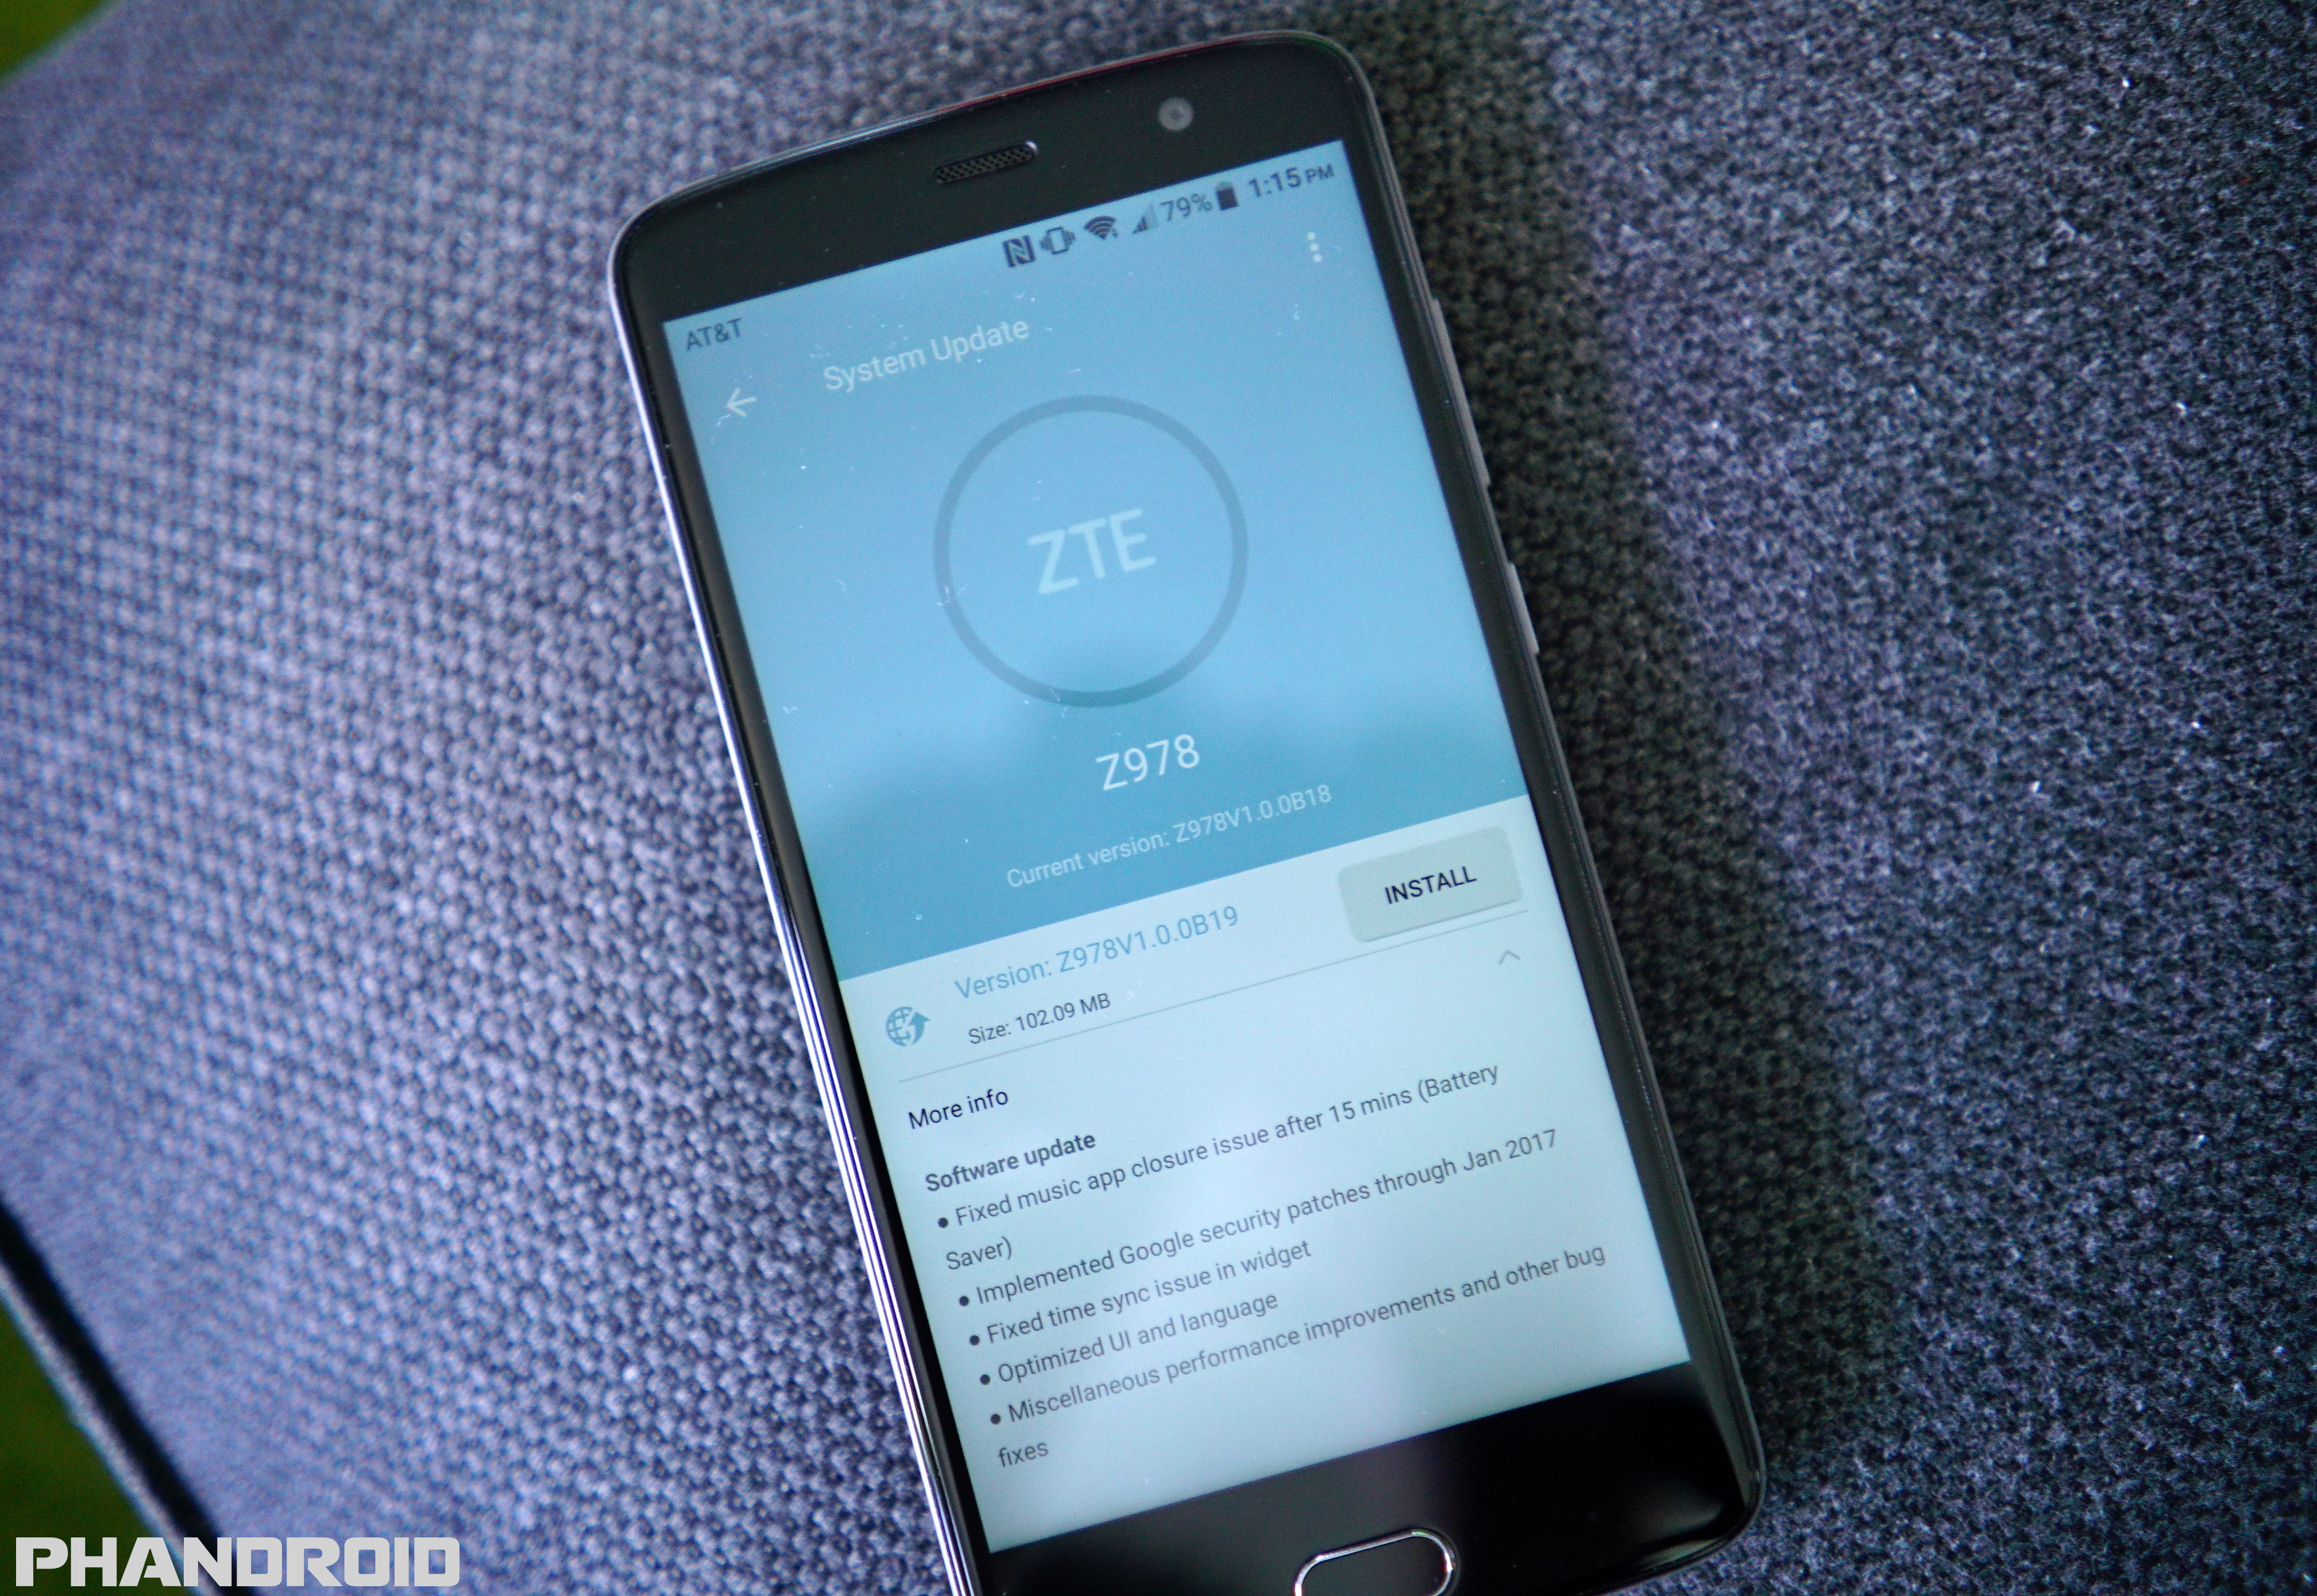 The Update Doesn't Just Fix The Music App Bug, With Zte Noting Other